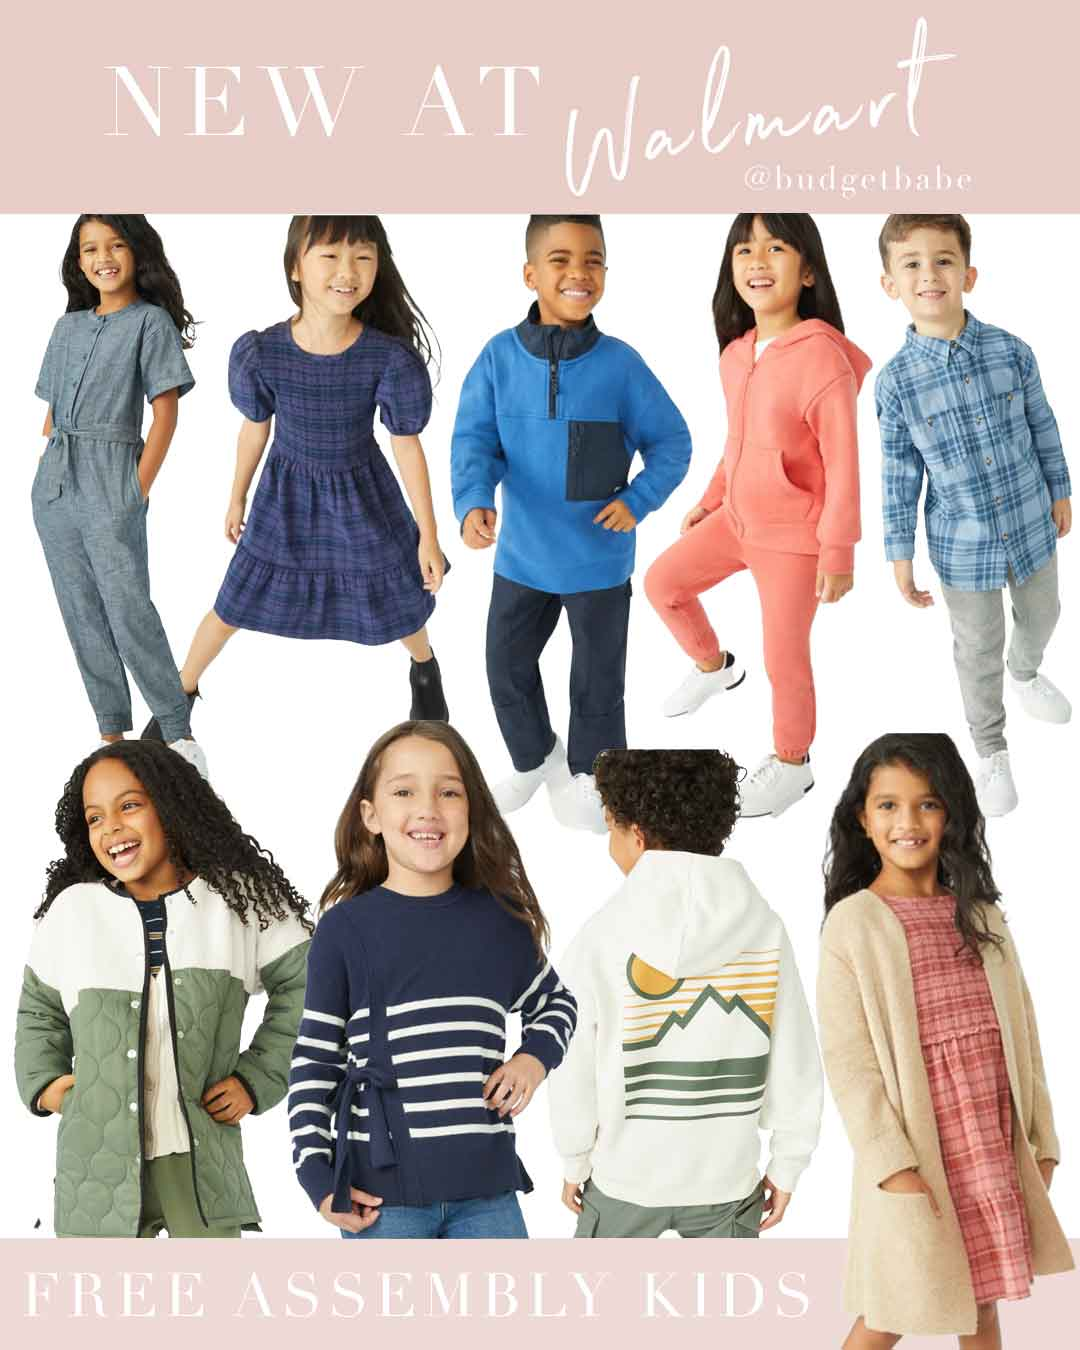 New kids clothing fashion line at Walmart, Free Assembly. Affordable and classic outfits for boys and girls